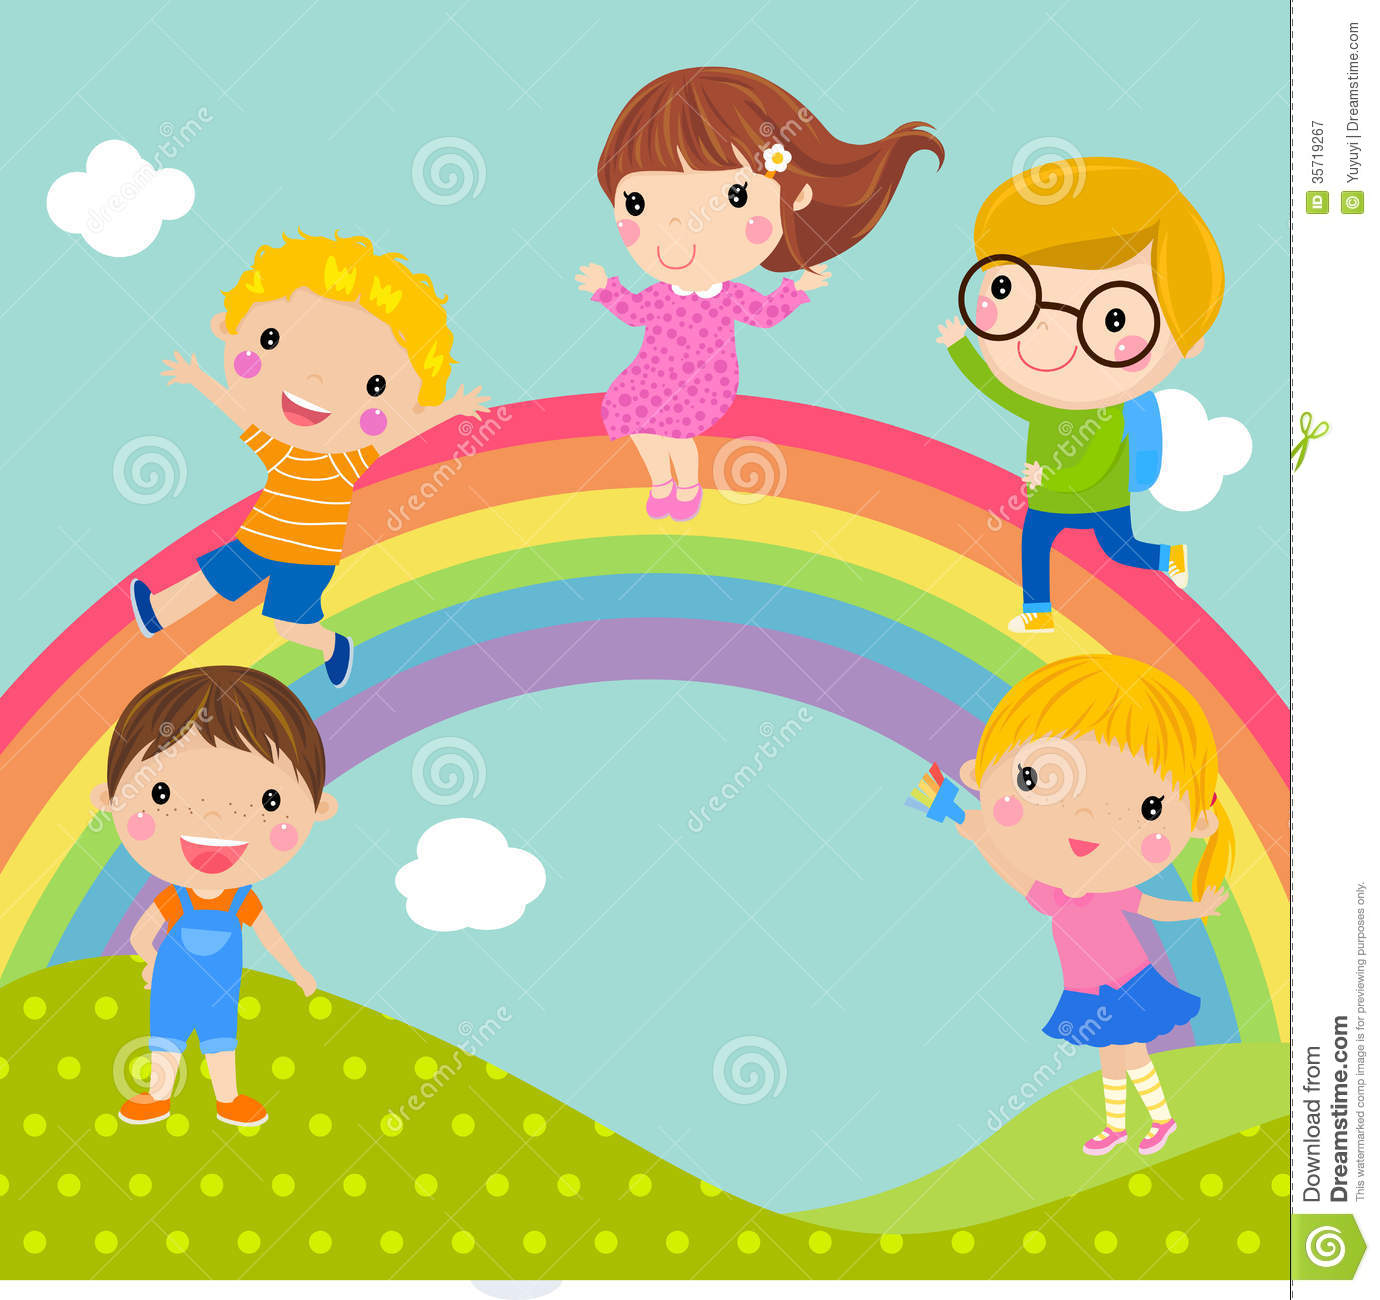 Program To Draw House Plans Kids And Rainbow Royalty Free Stock Photography Image